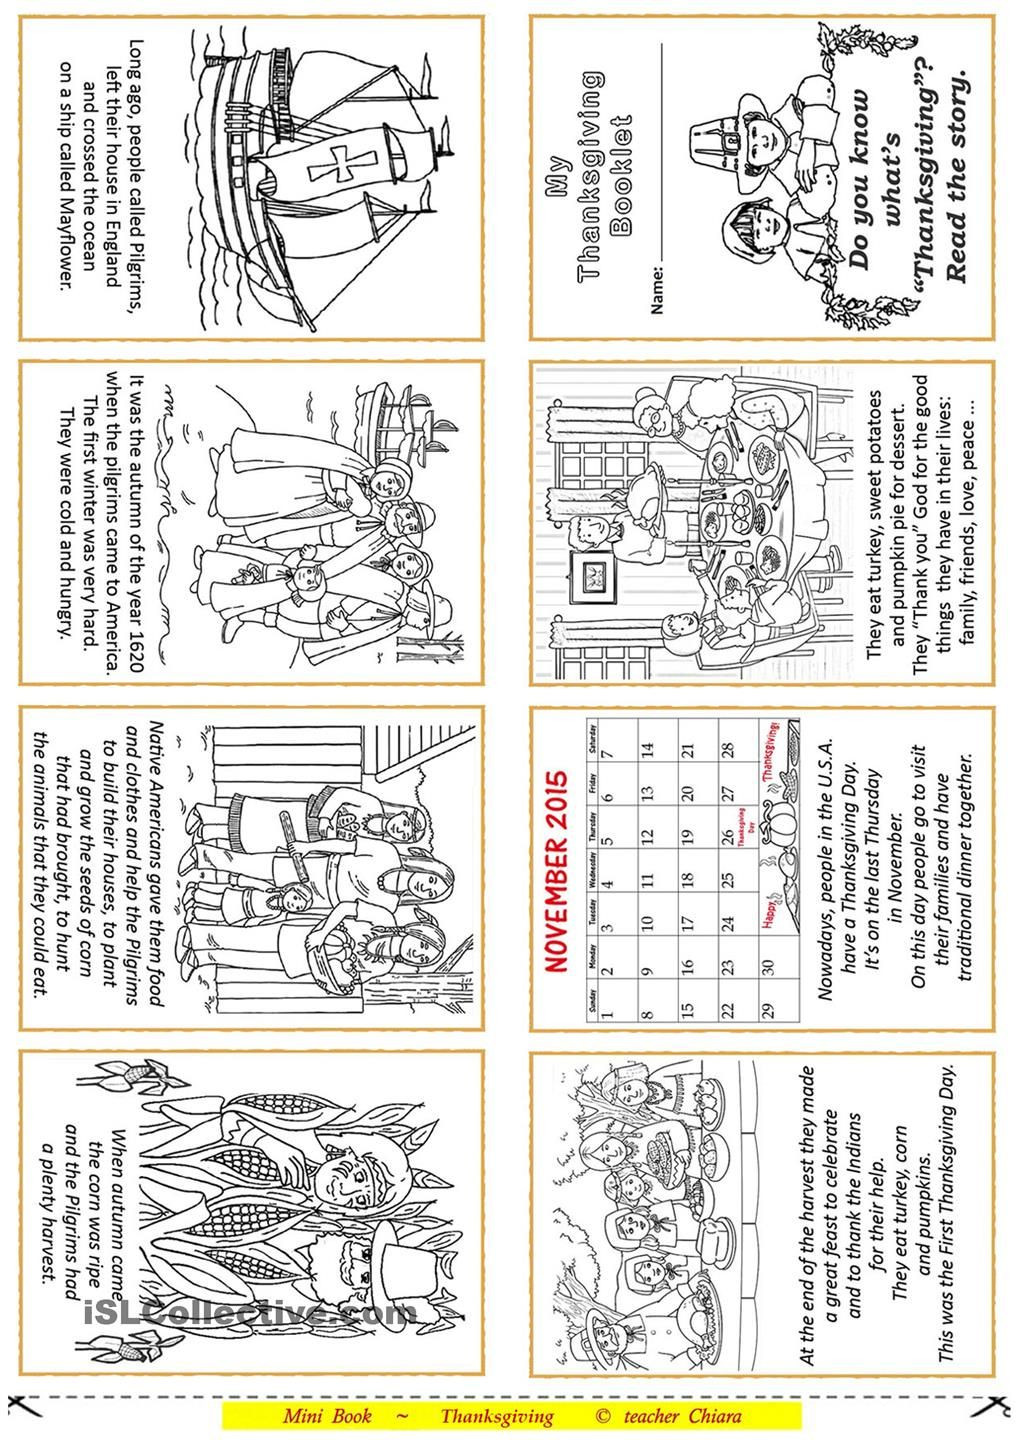 Thanksgiving Worksheets for Middle School Thanksgiving Booklet